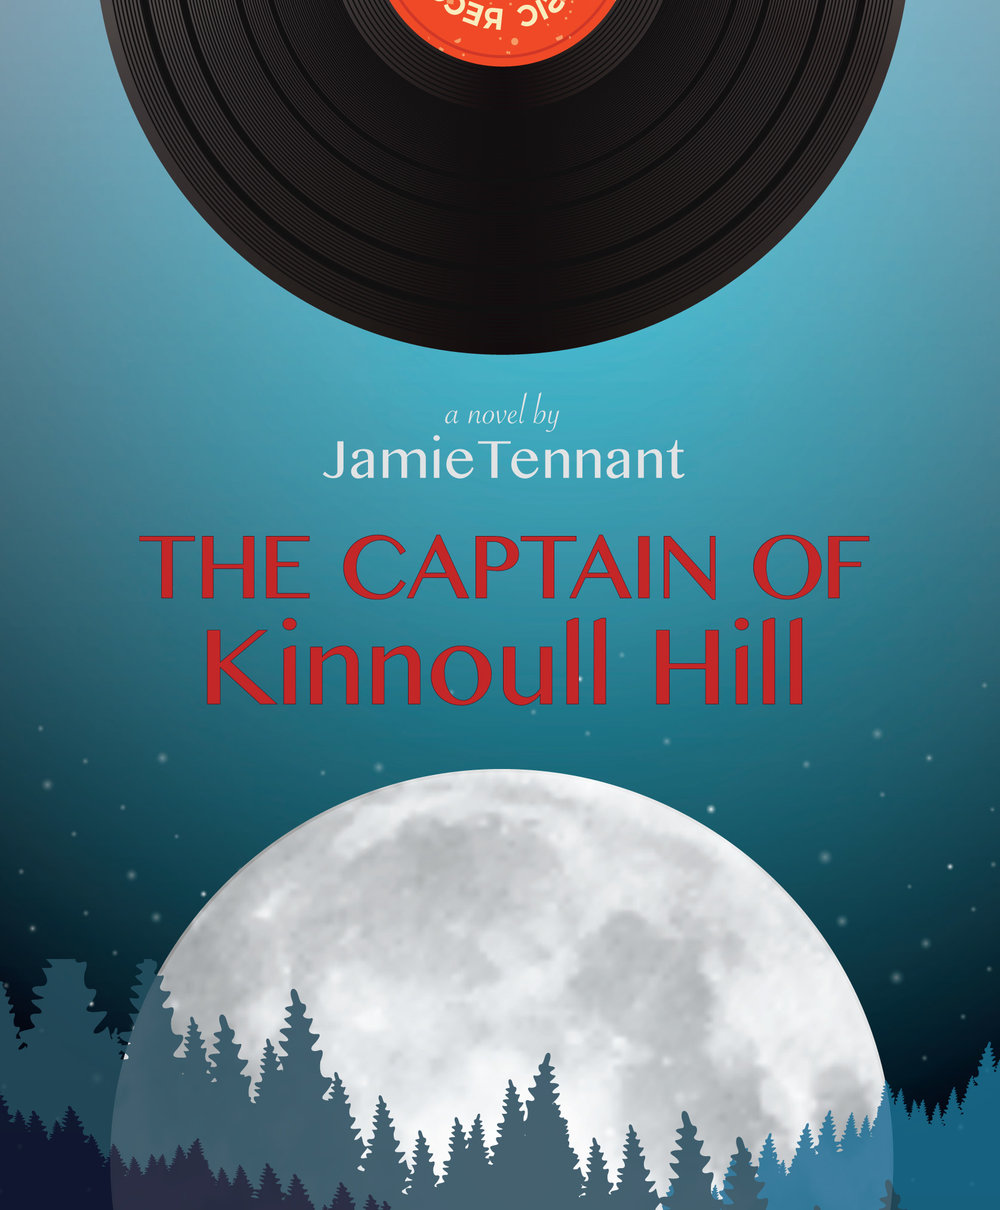 Jamie Tennant. The Captain of Kinnoull Hill. Palimpsest Press. $19.95, 280 pp., ISBN: 9781926794365